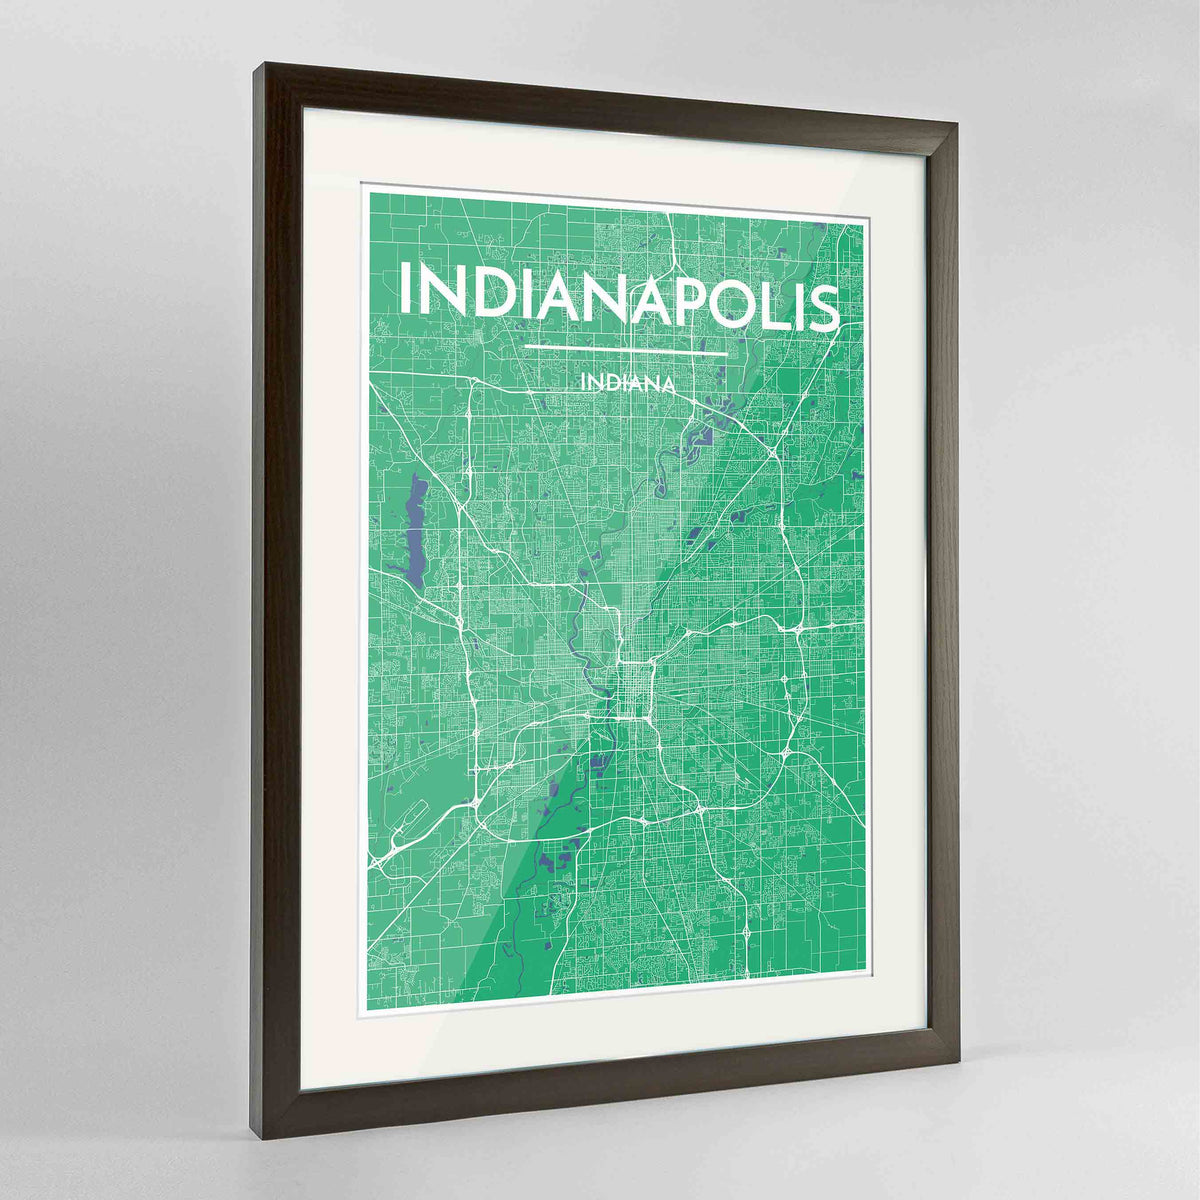 "Framed Indianapolis Map Art Print 24x36"" Contemporary Walnut frame Point Two Design Group"